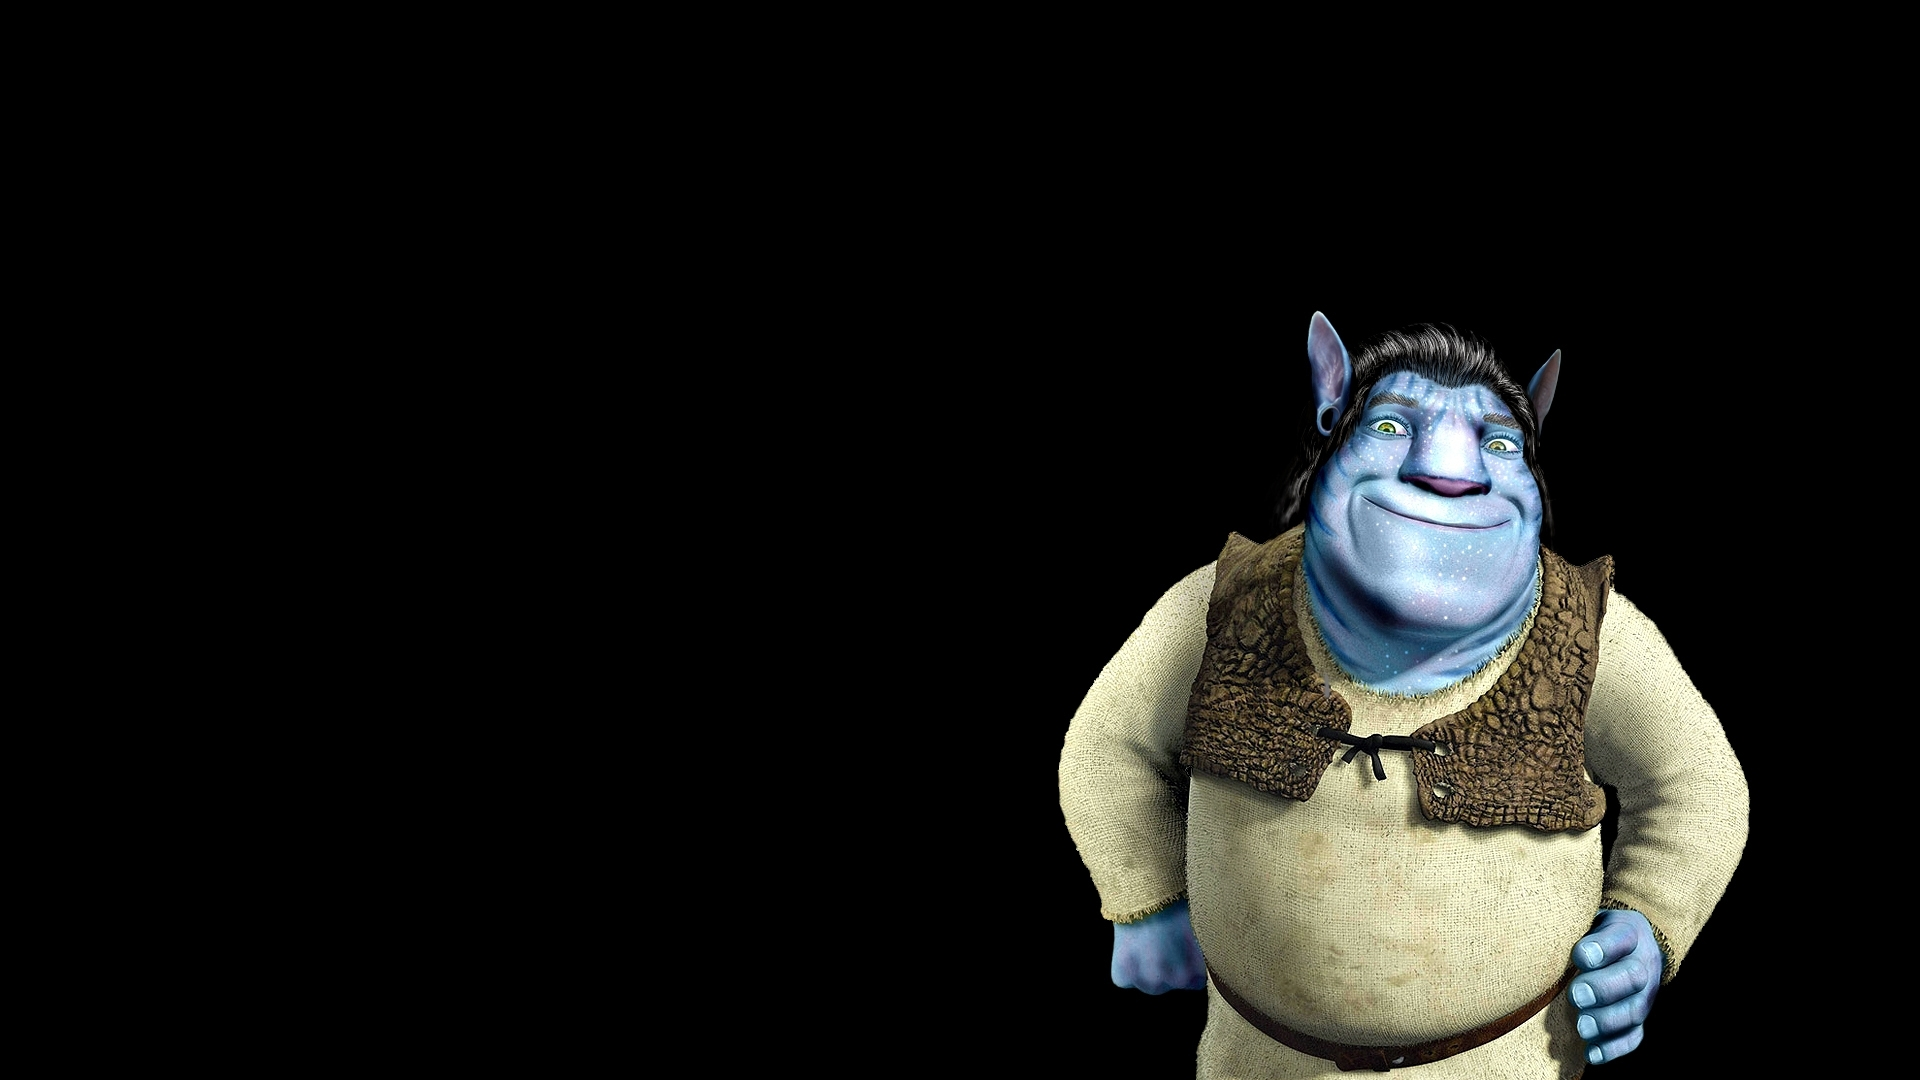 23479 download wallpaper Funny, Shrek, Avatar screensavers and pictures for free